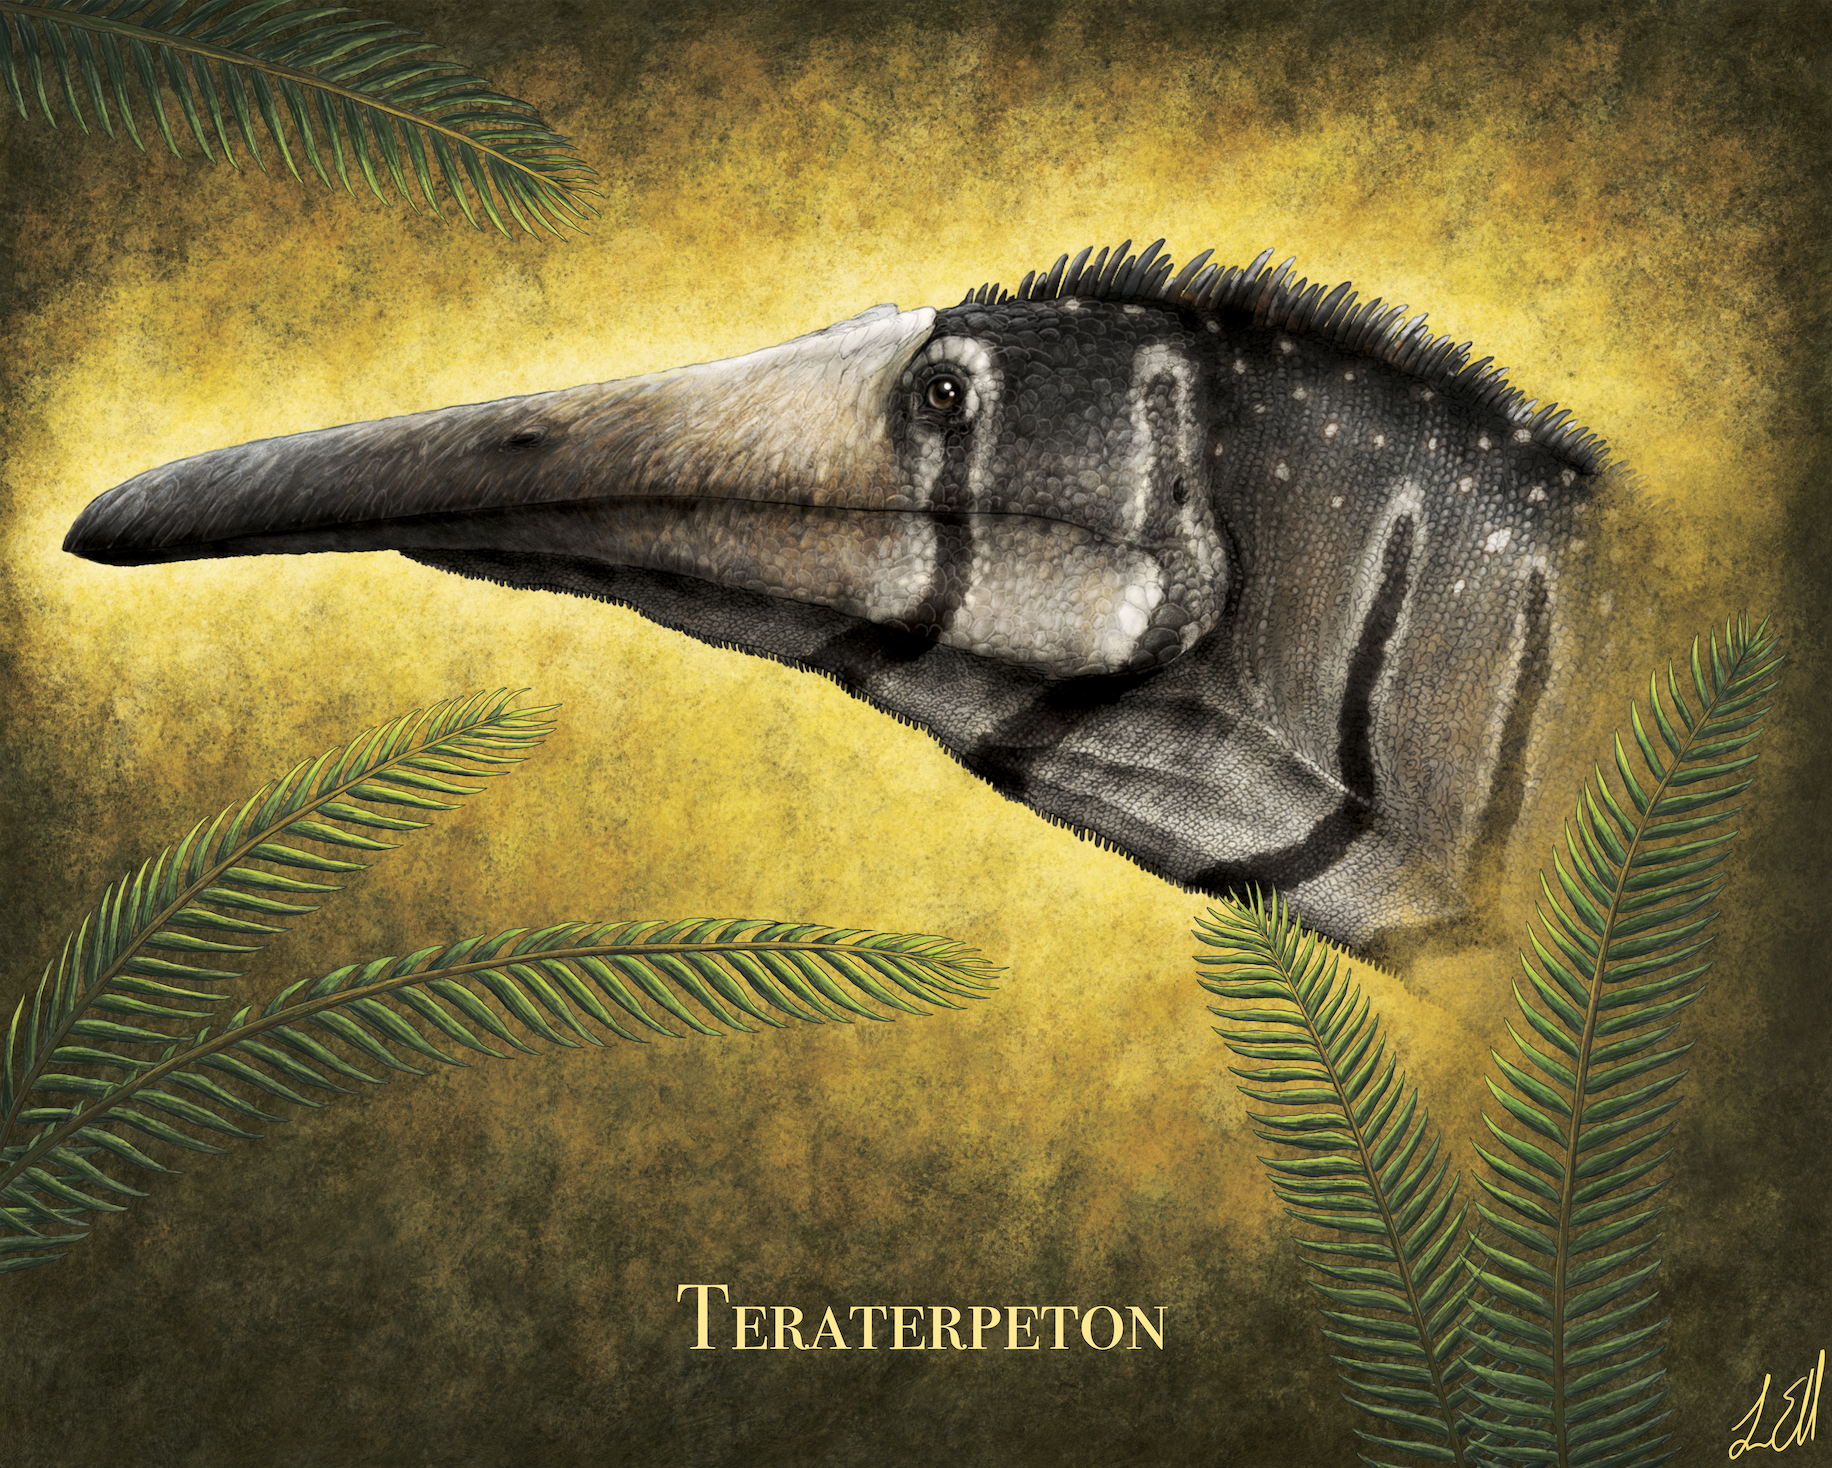 Profile rendering of the late Triassic archosauromorph Teraterpeton